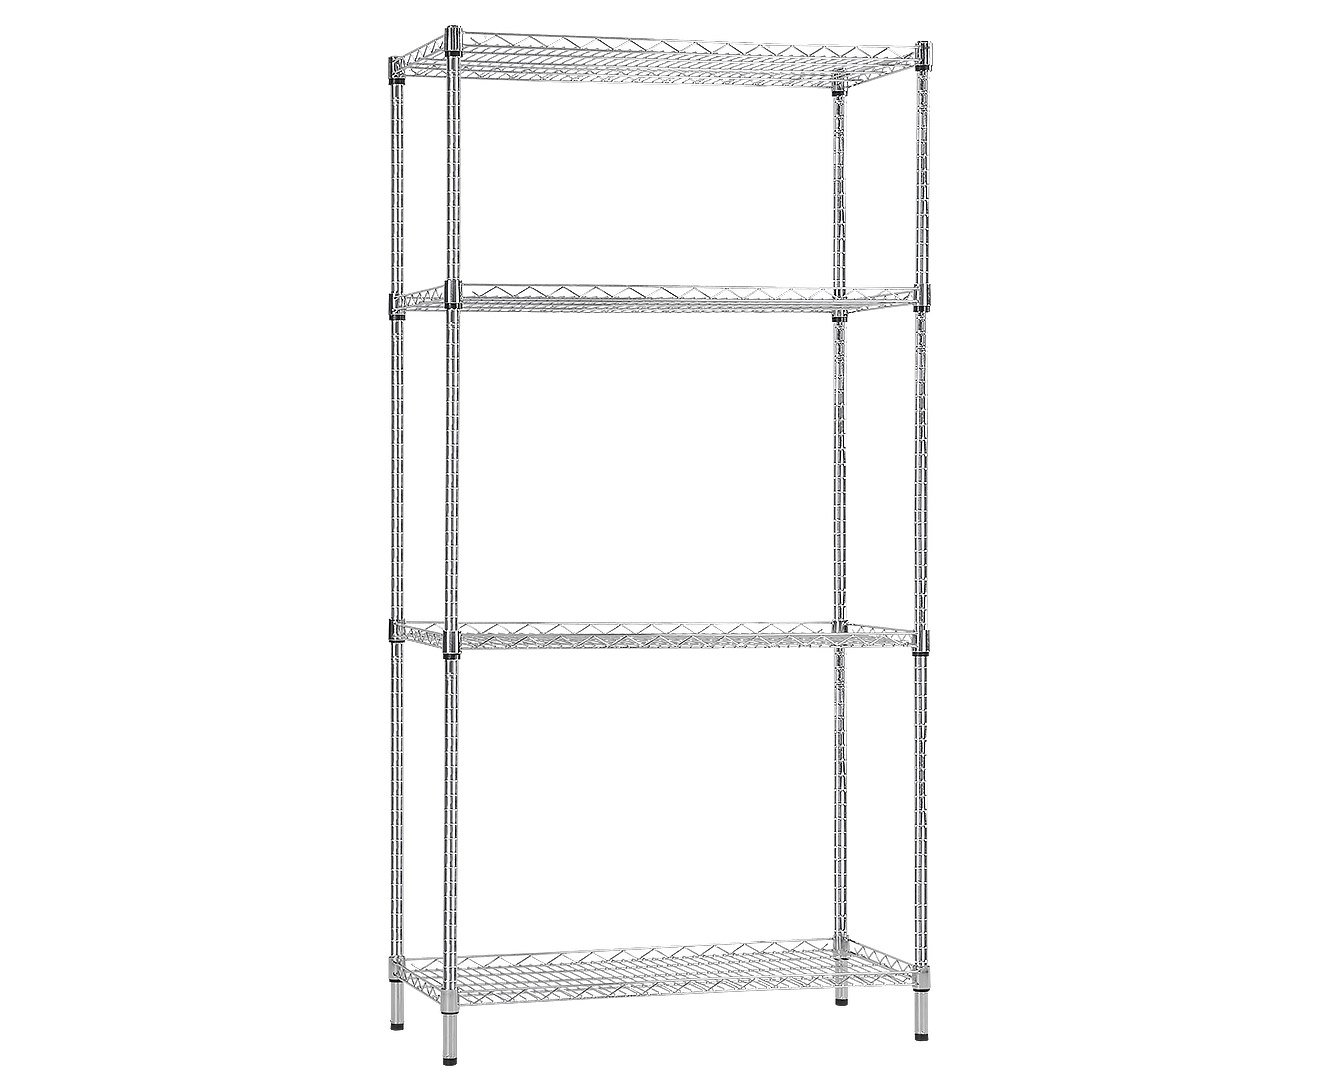 Syncrosteel Chrome Wire Shelving Storage  900 x 350mm - 1.80 m high